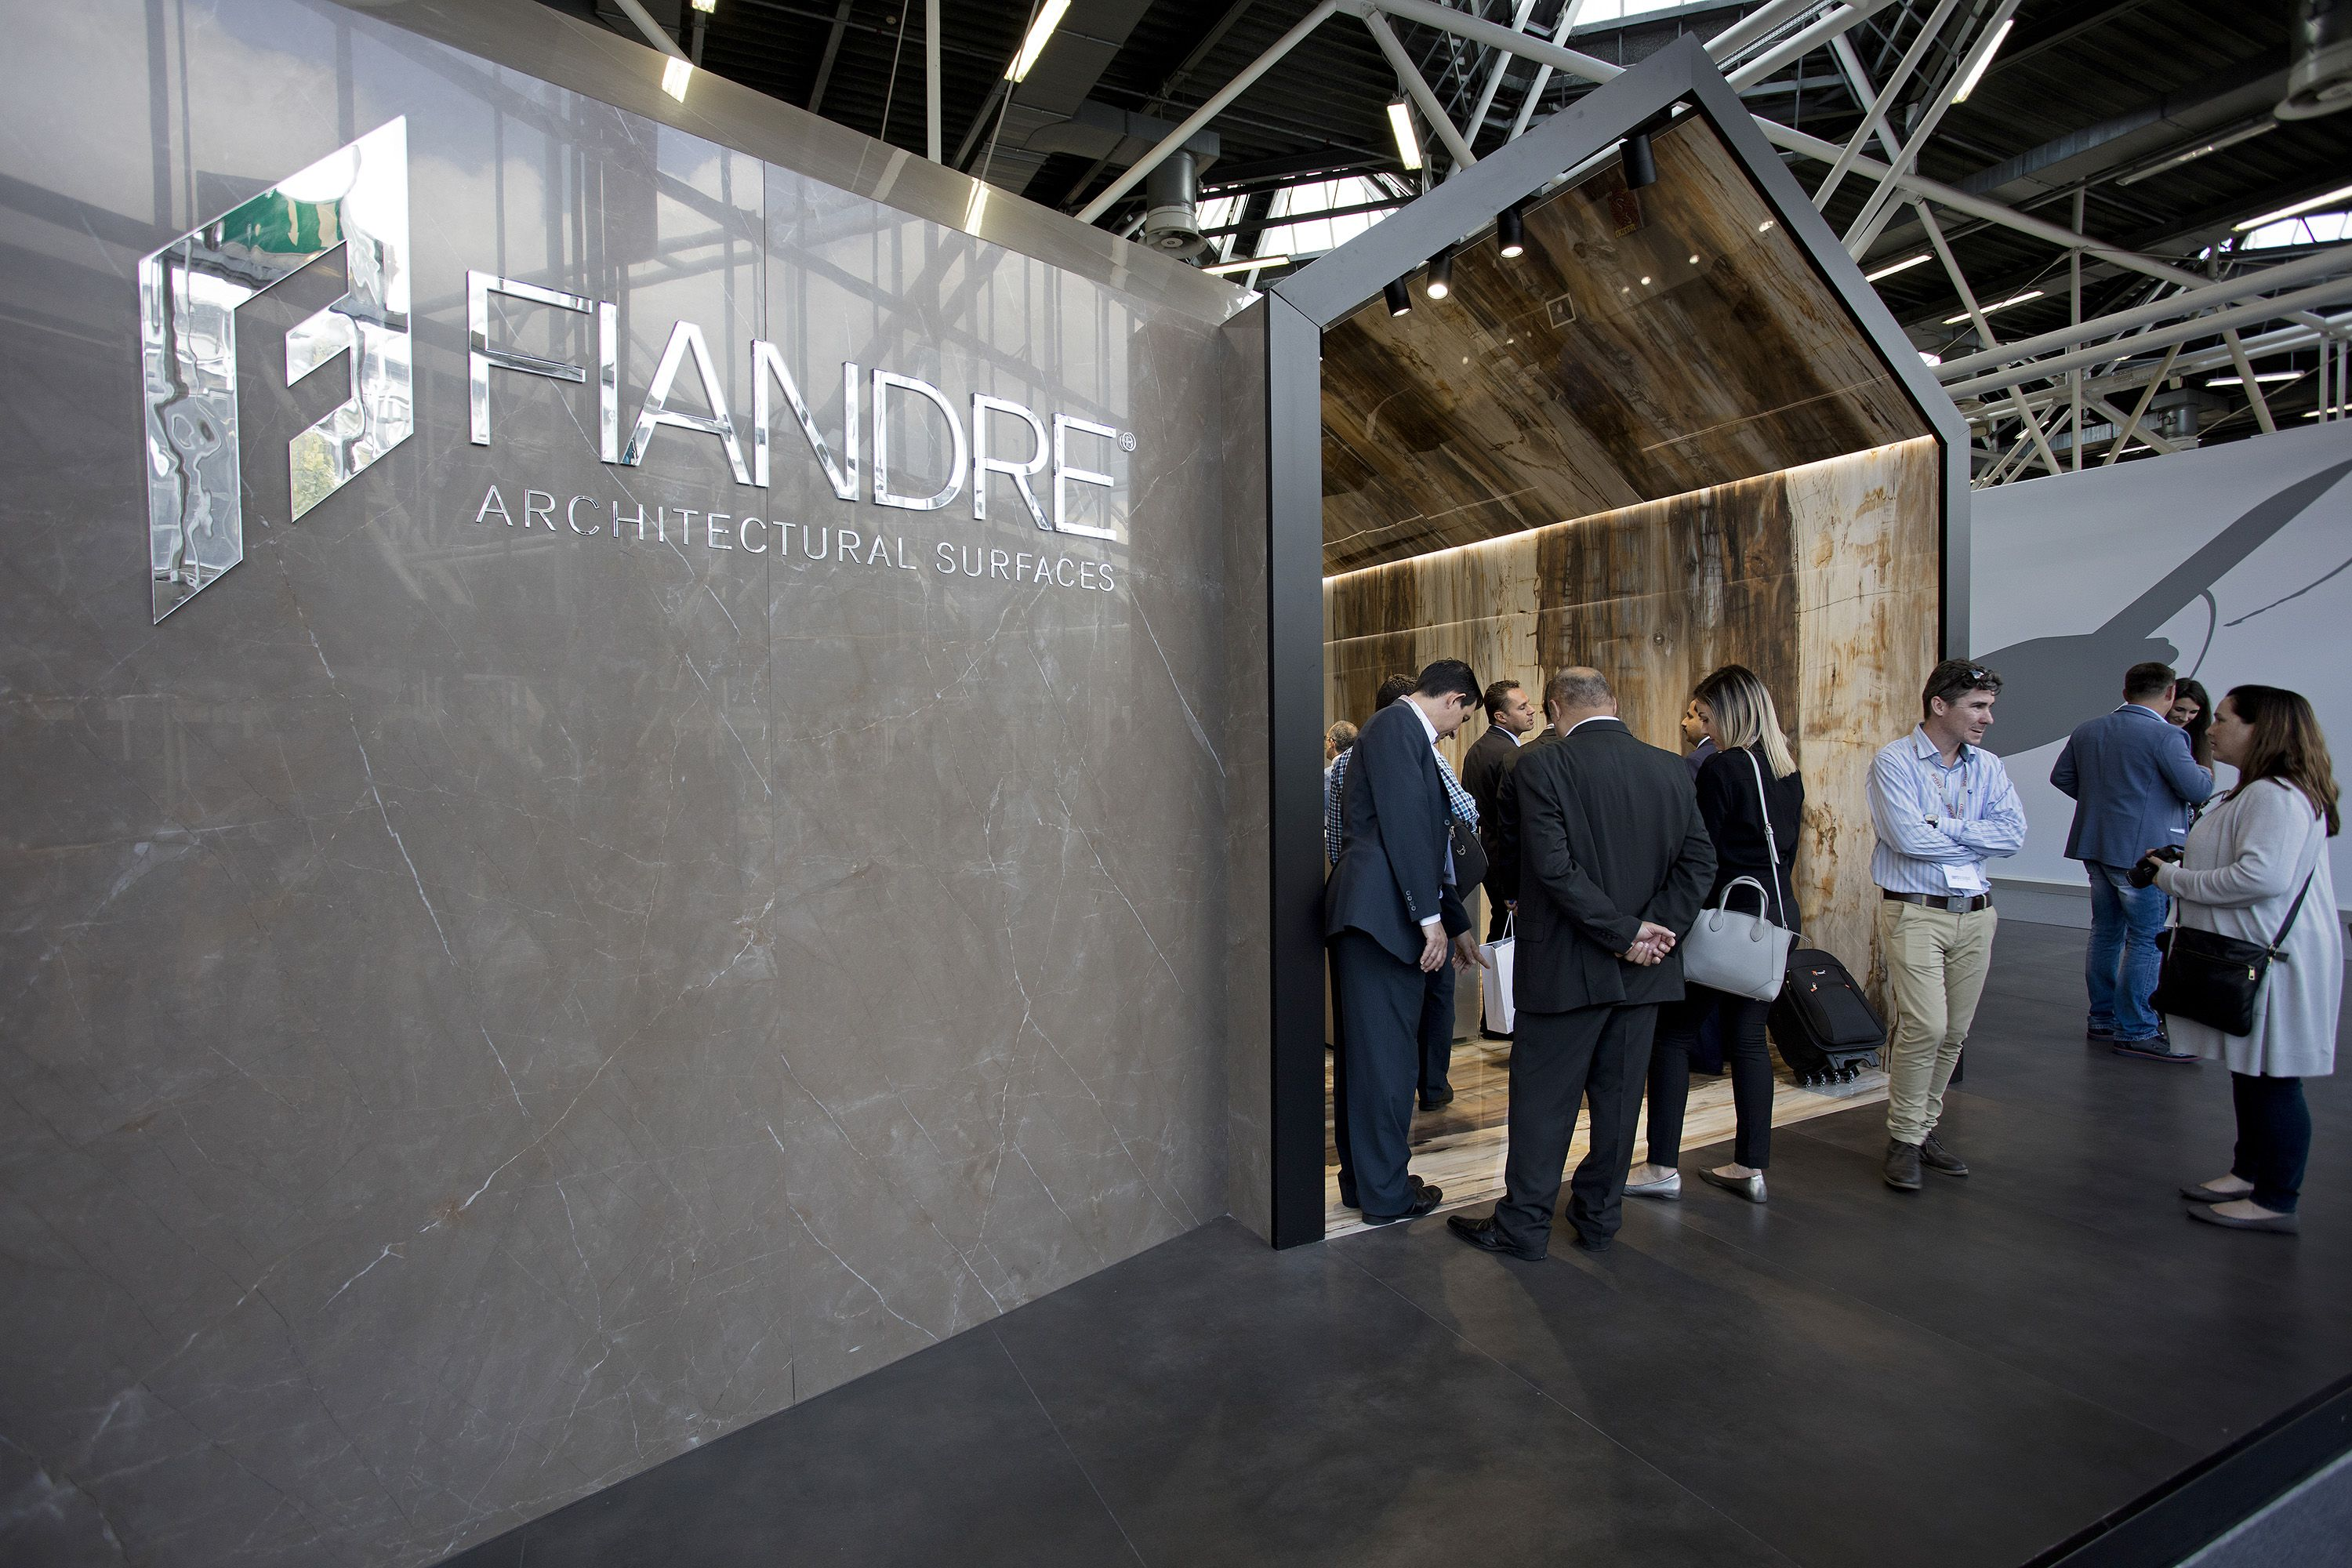 FIANDRE ARCHITECTURAL SURFACES 25–29 SEPTEMBER CERSAIE, BOLOGNA hall 25 stand A164/B165